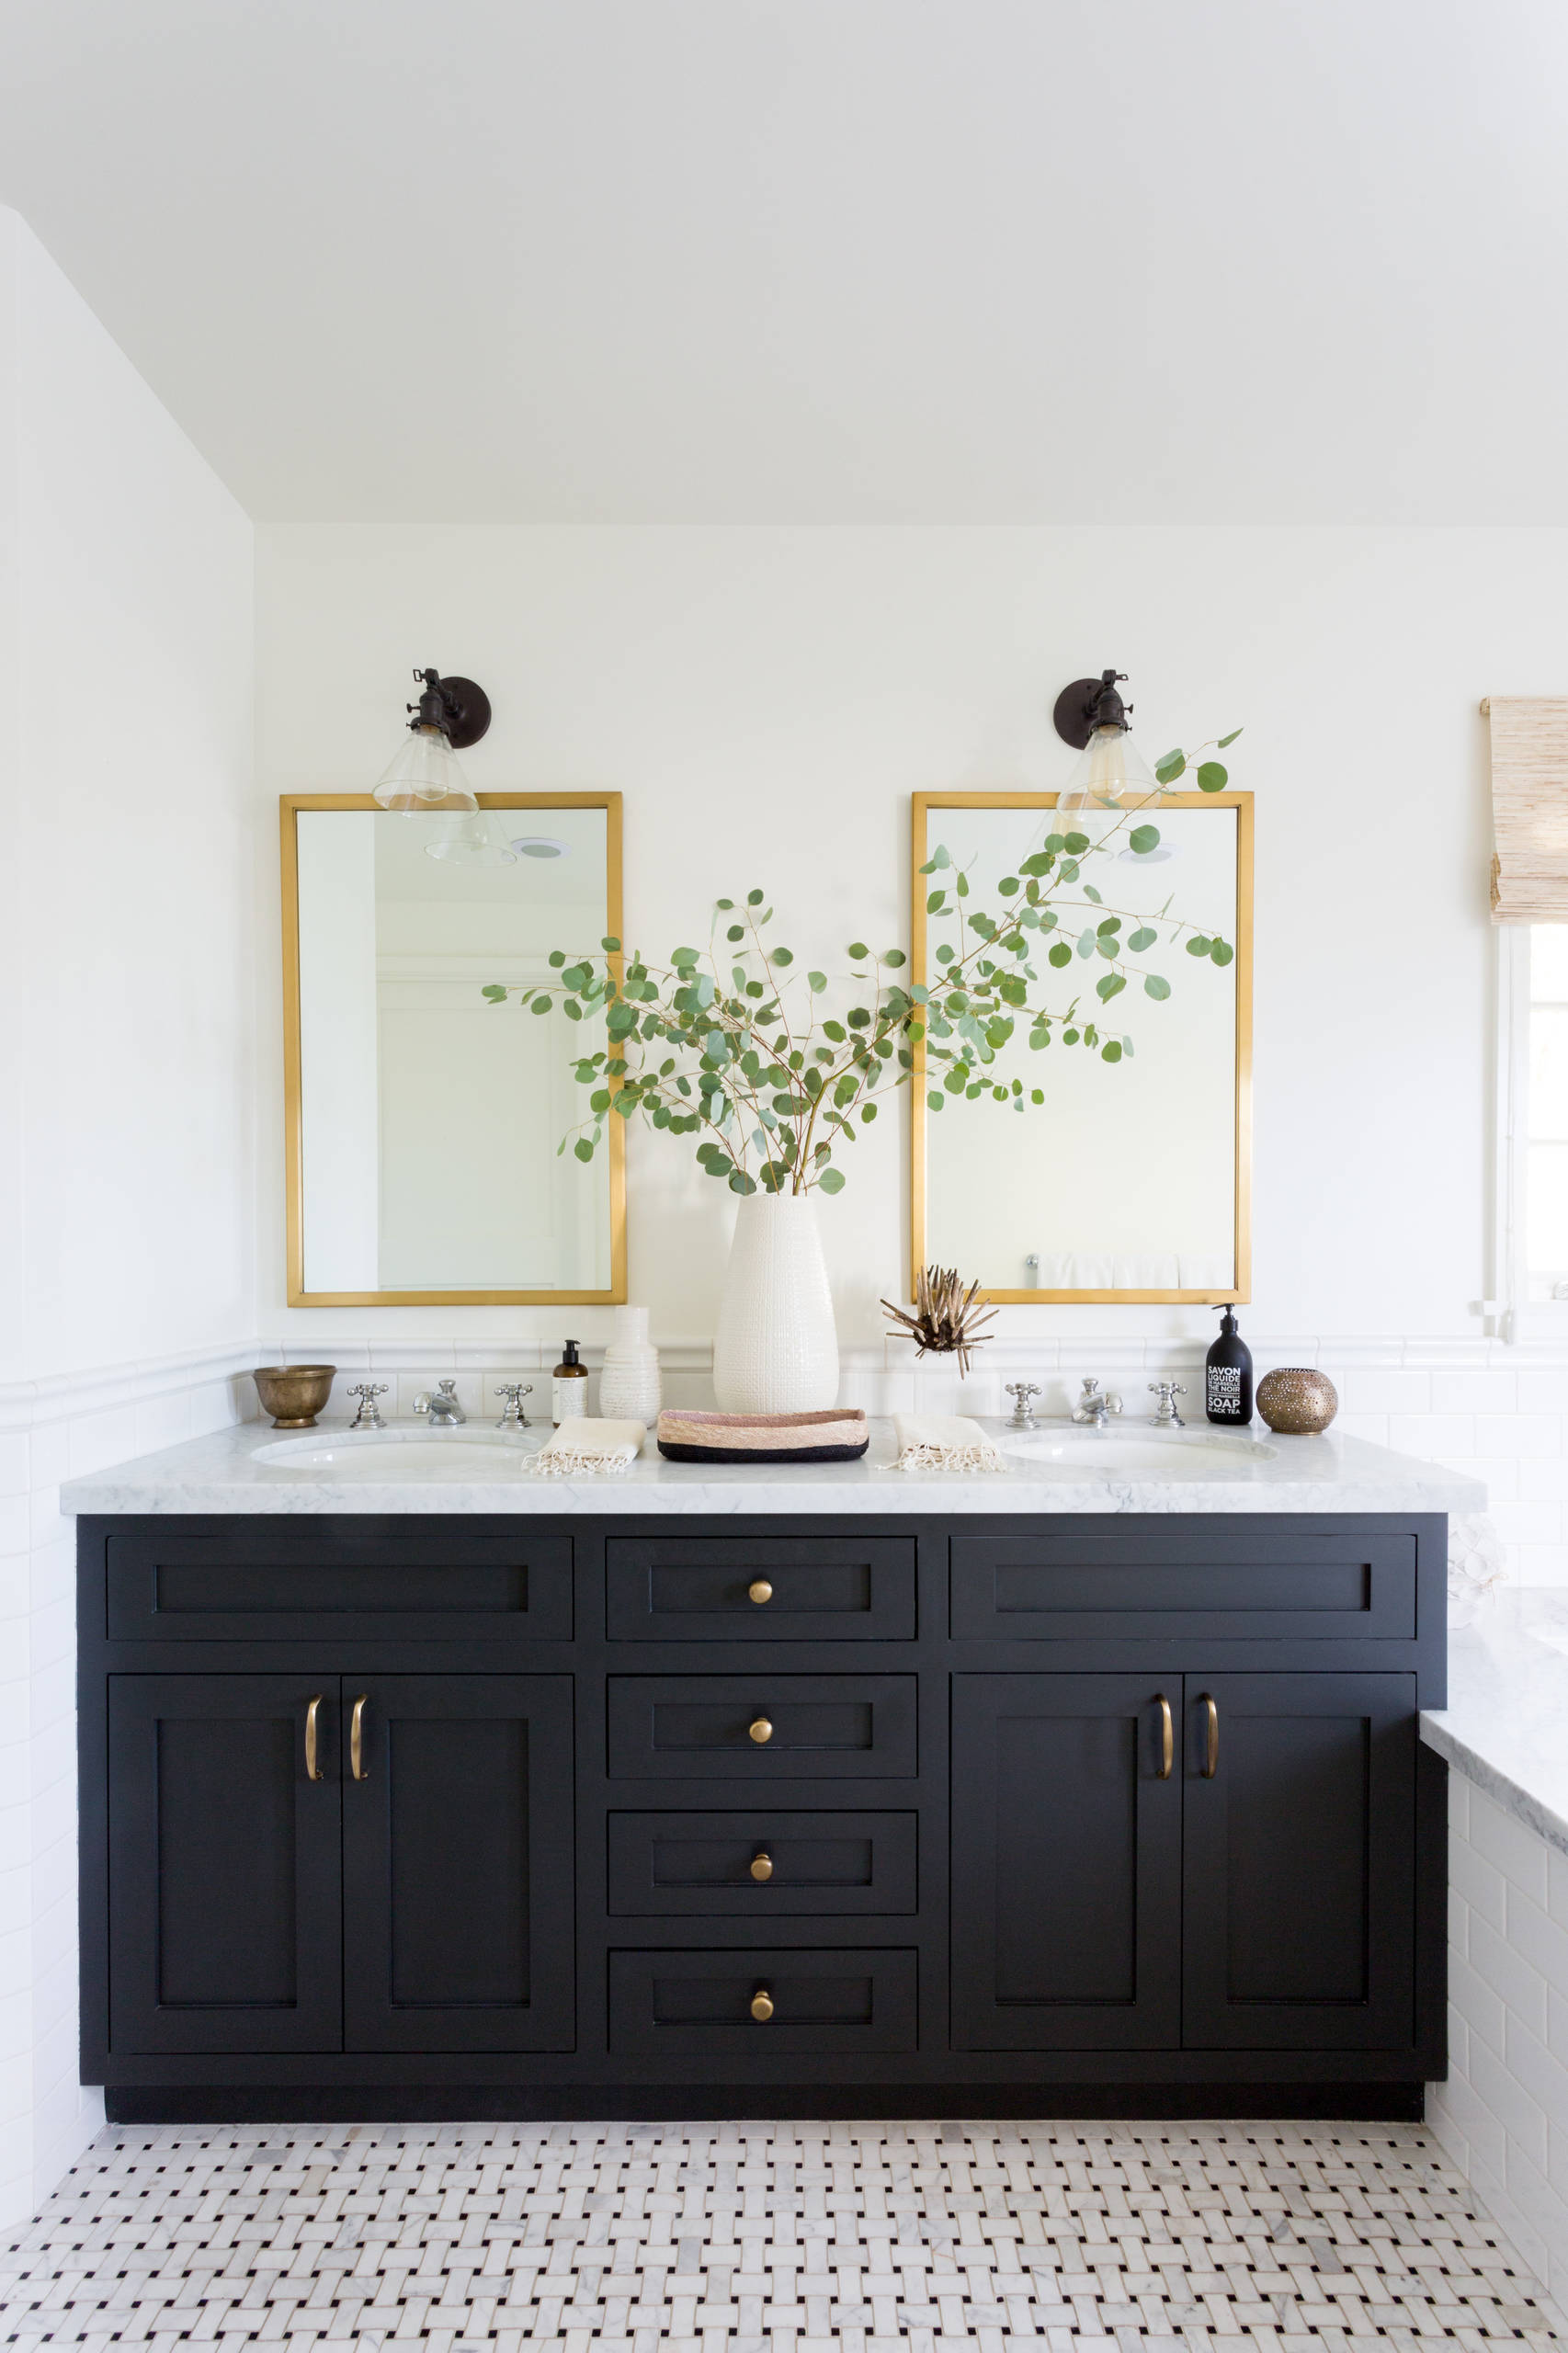 75 Beautiful Bathroom With Black Cabinets Pictures Ideas April 2021 Houzz